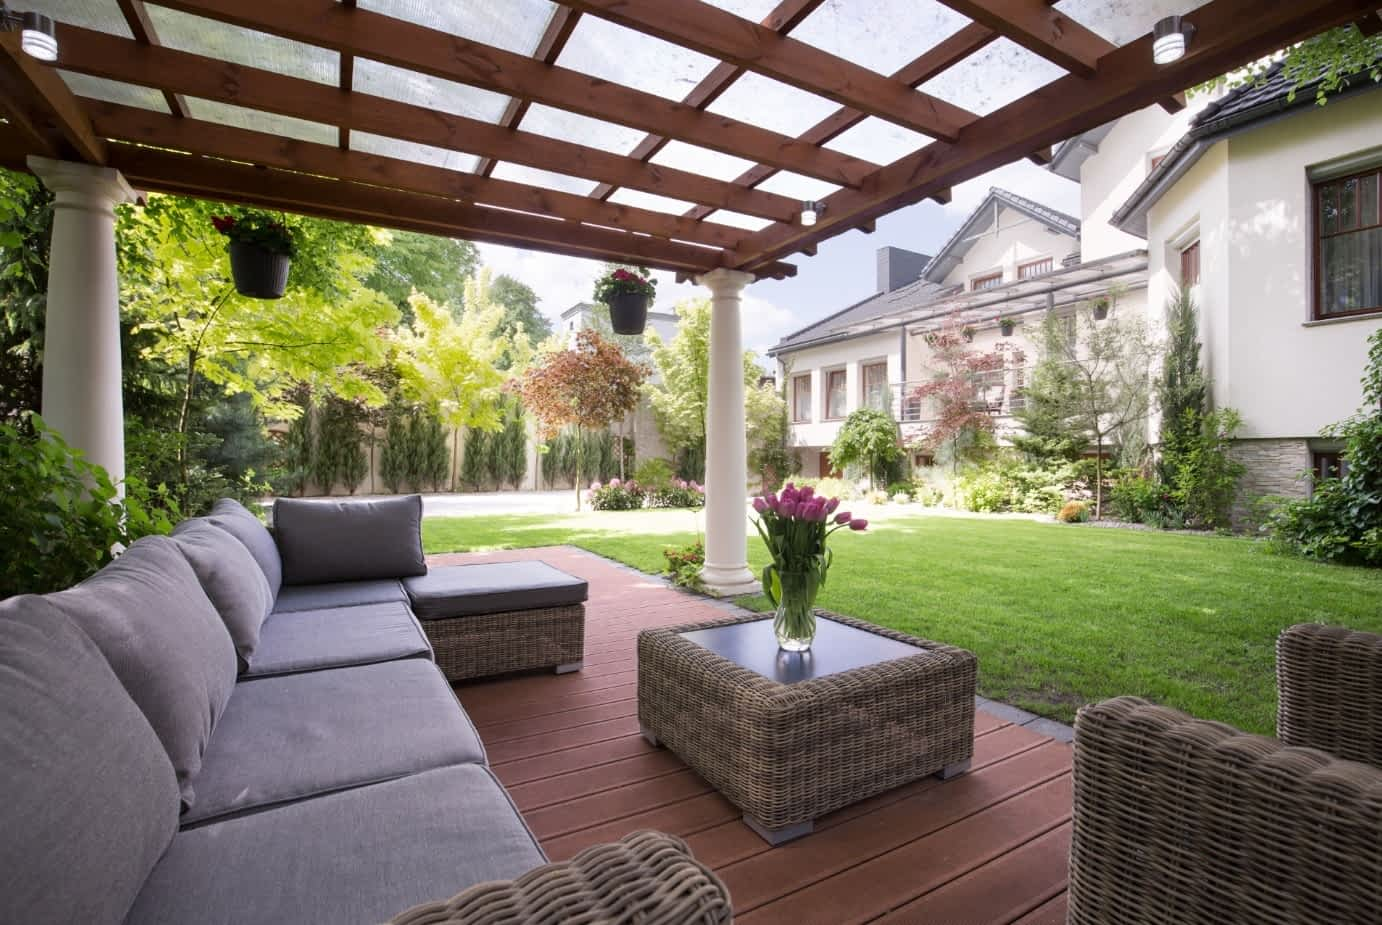 Turn Your Outdoor Space into a Resort-like Luxury!